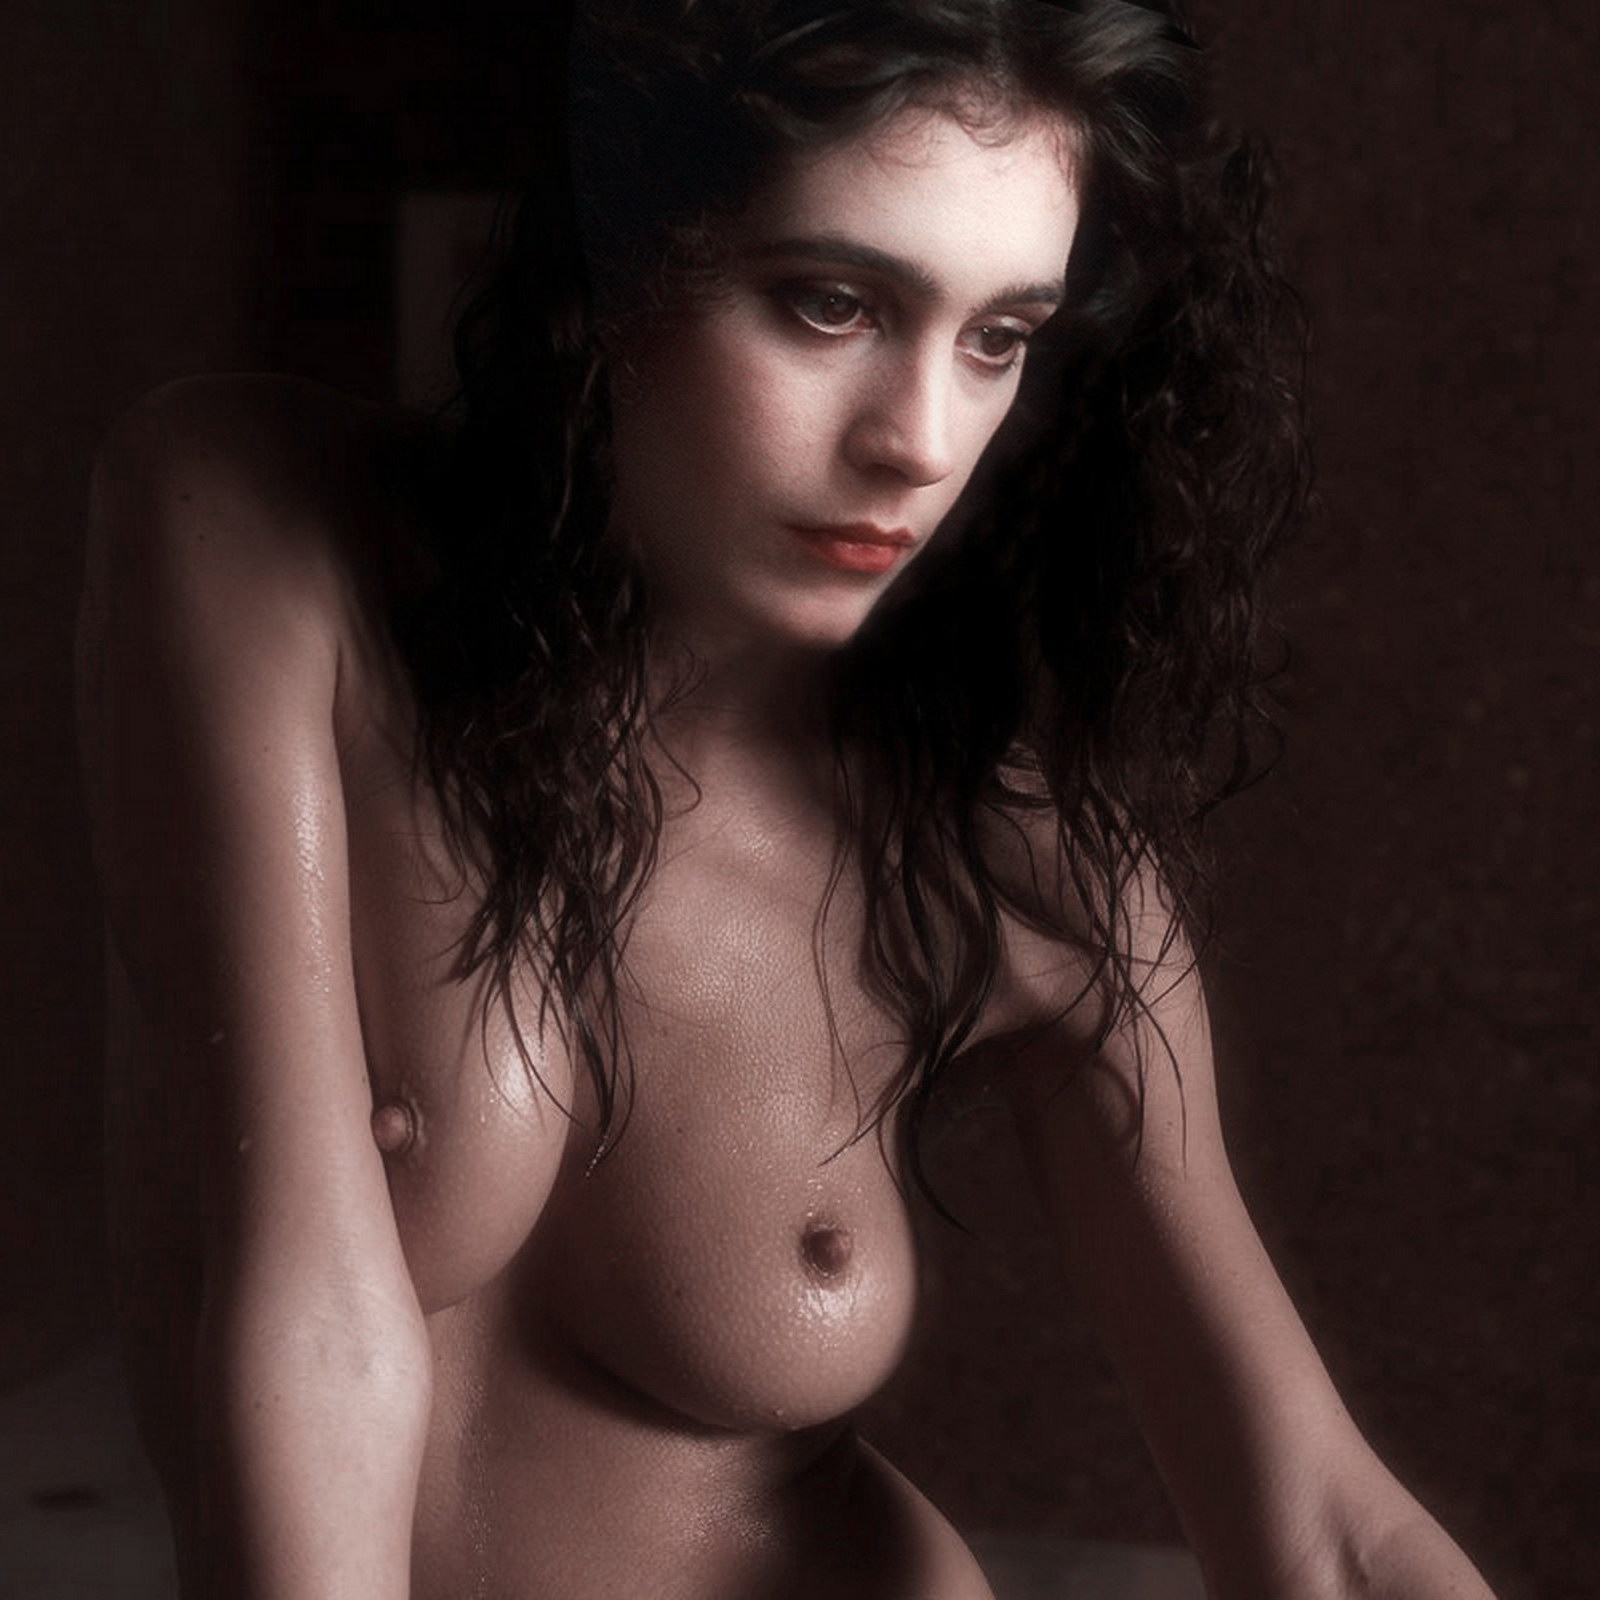 sean young breasts leased weighing